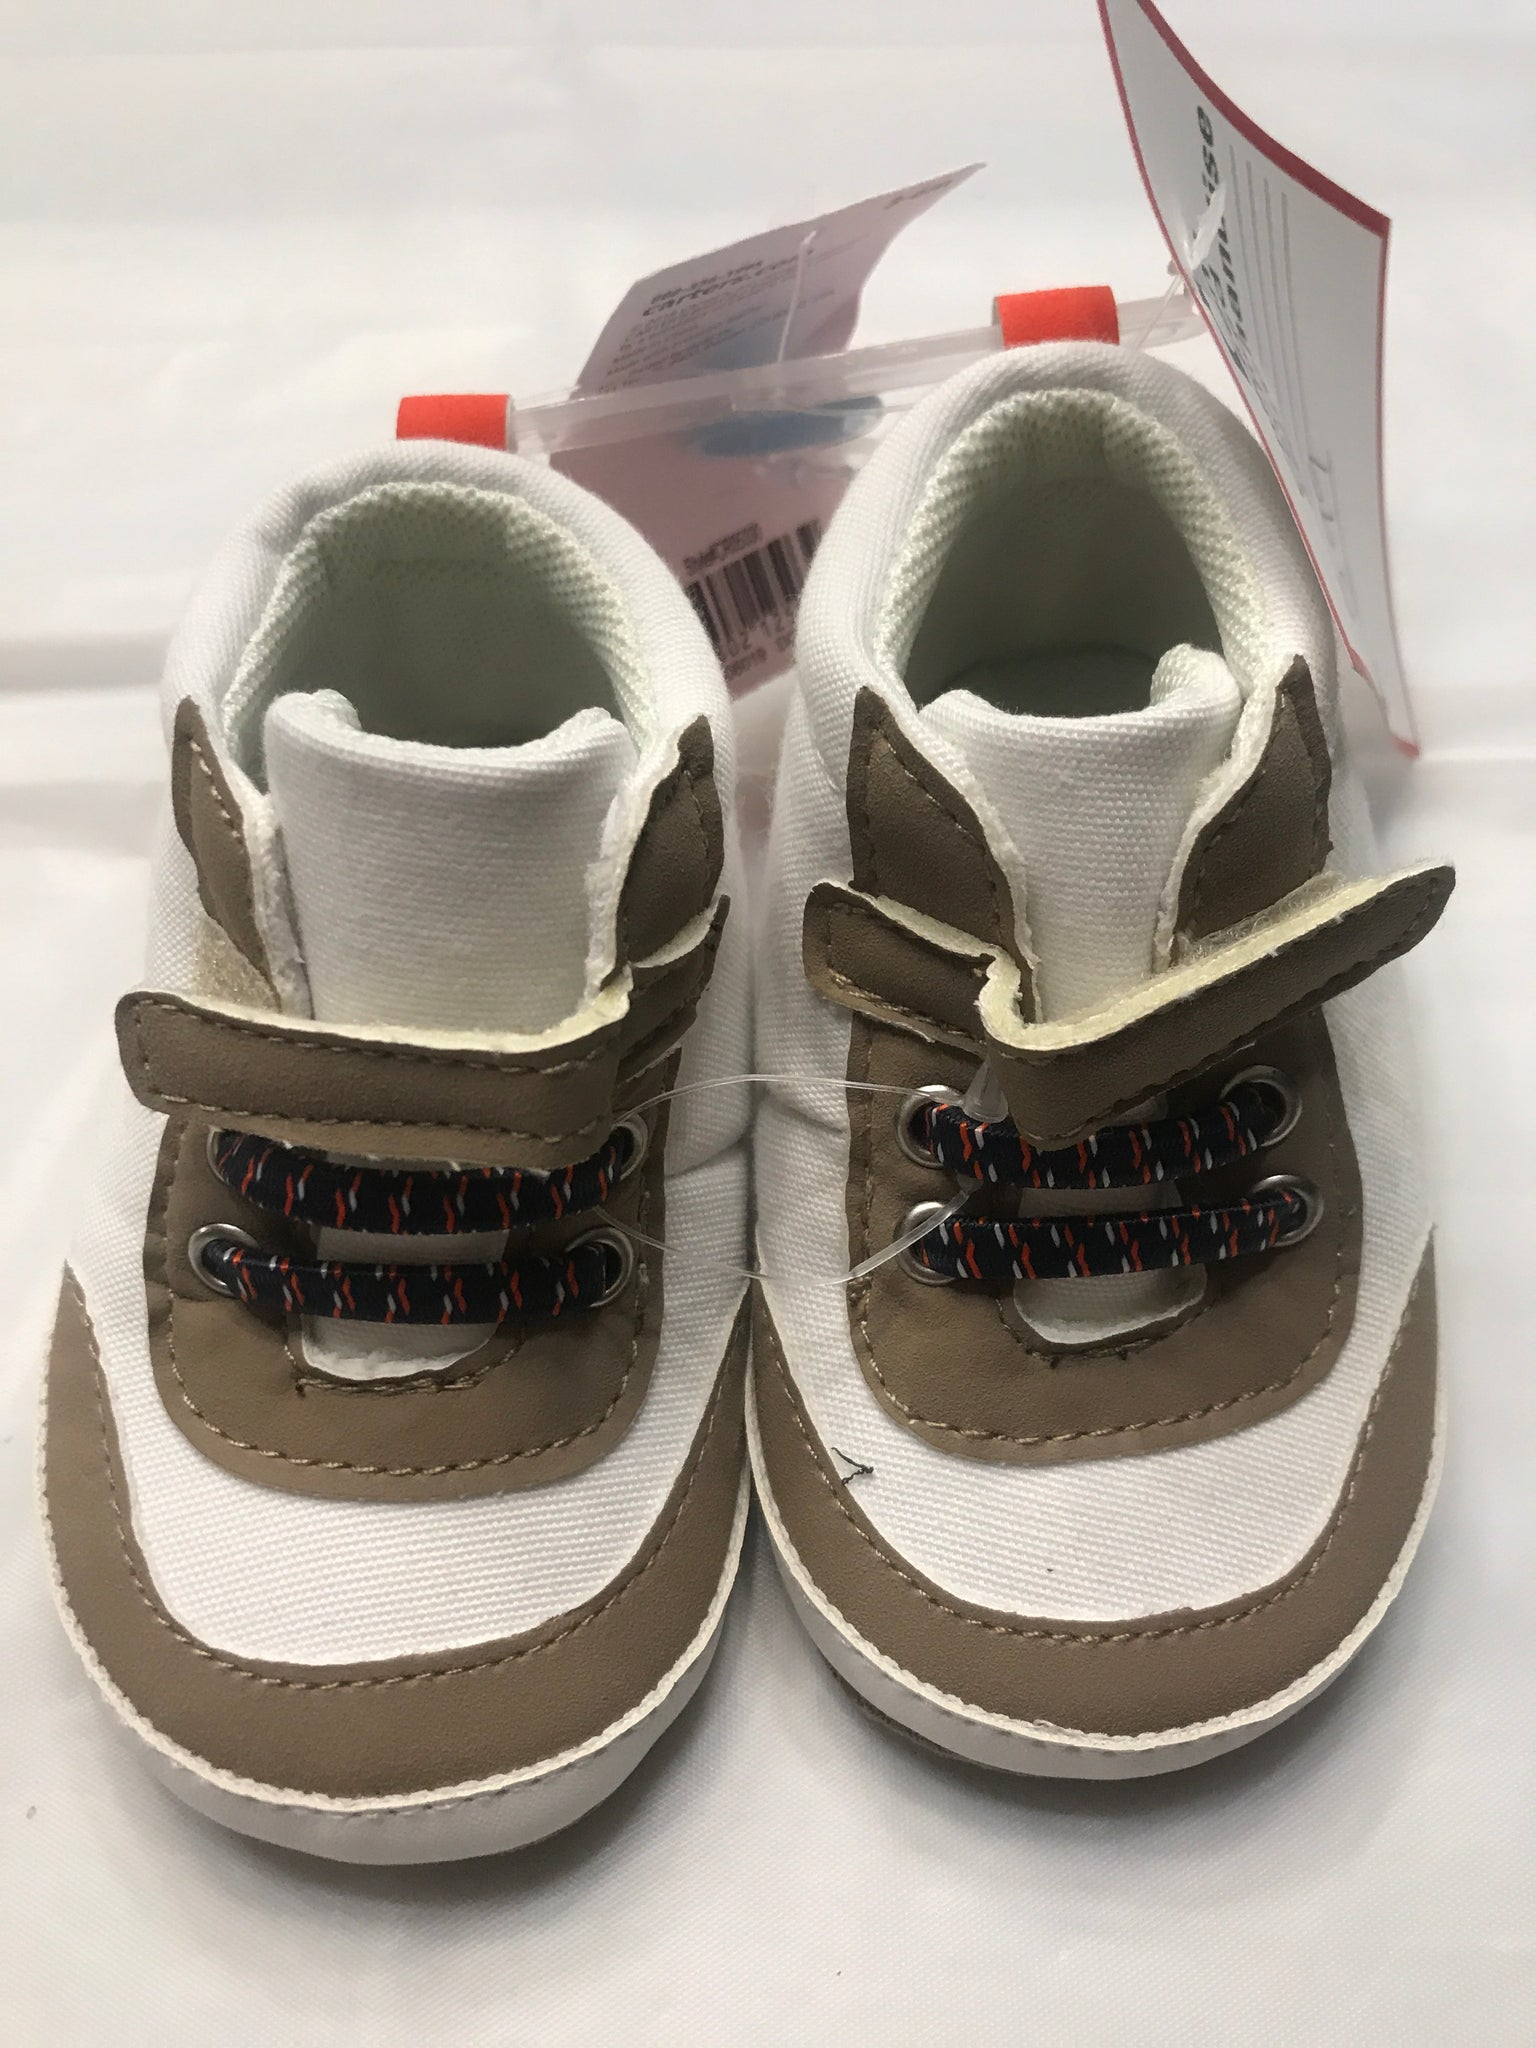 2 Infant Carter's shoes